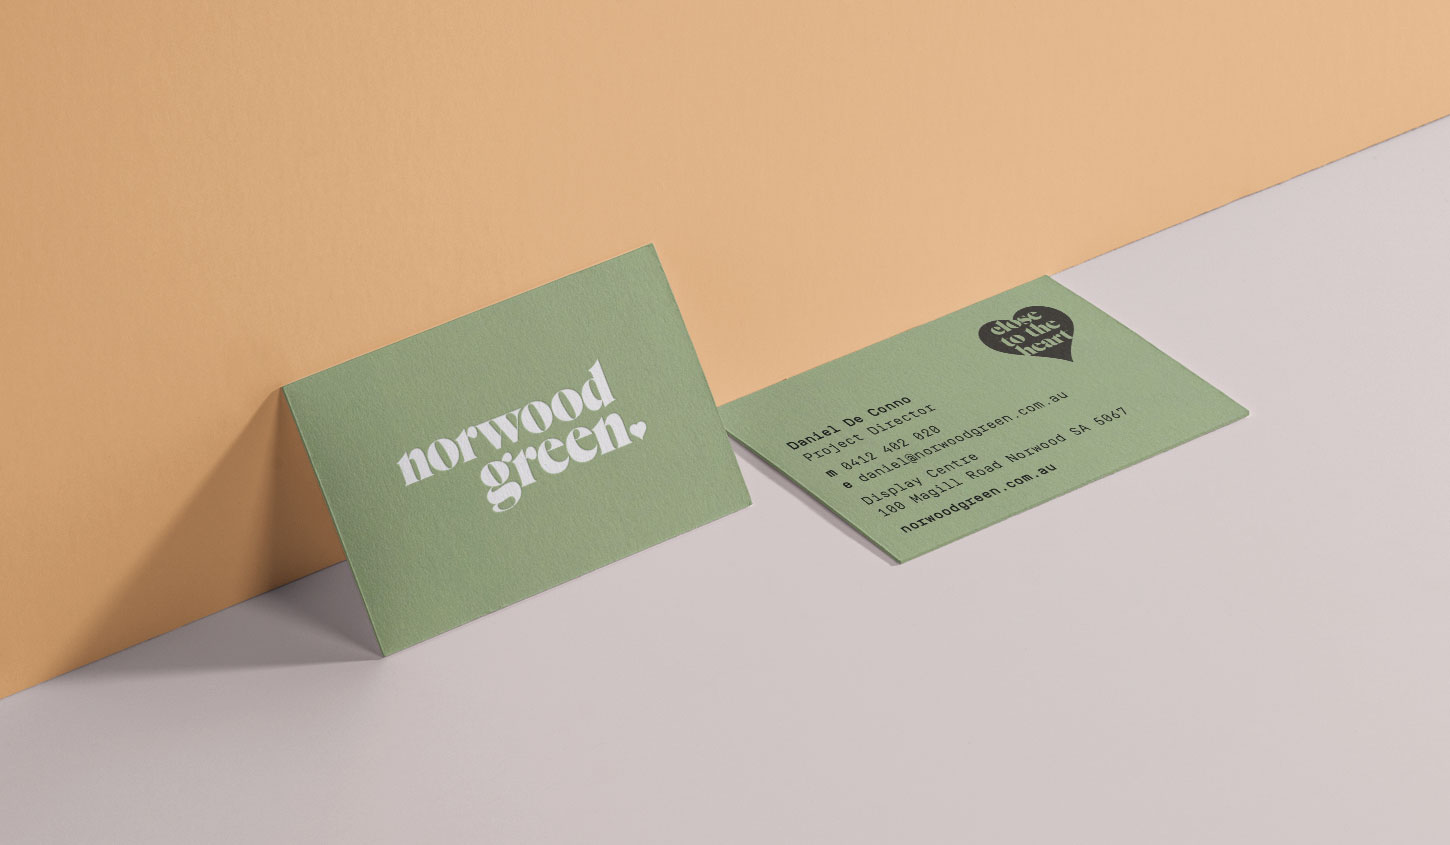 Norwood Green Business cards designed by Algo Mas